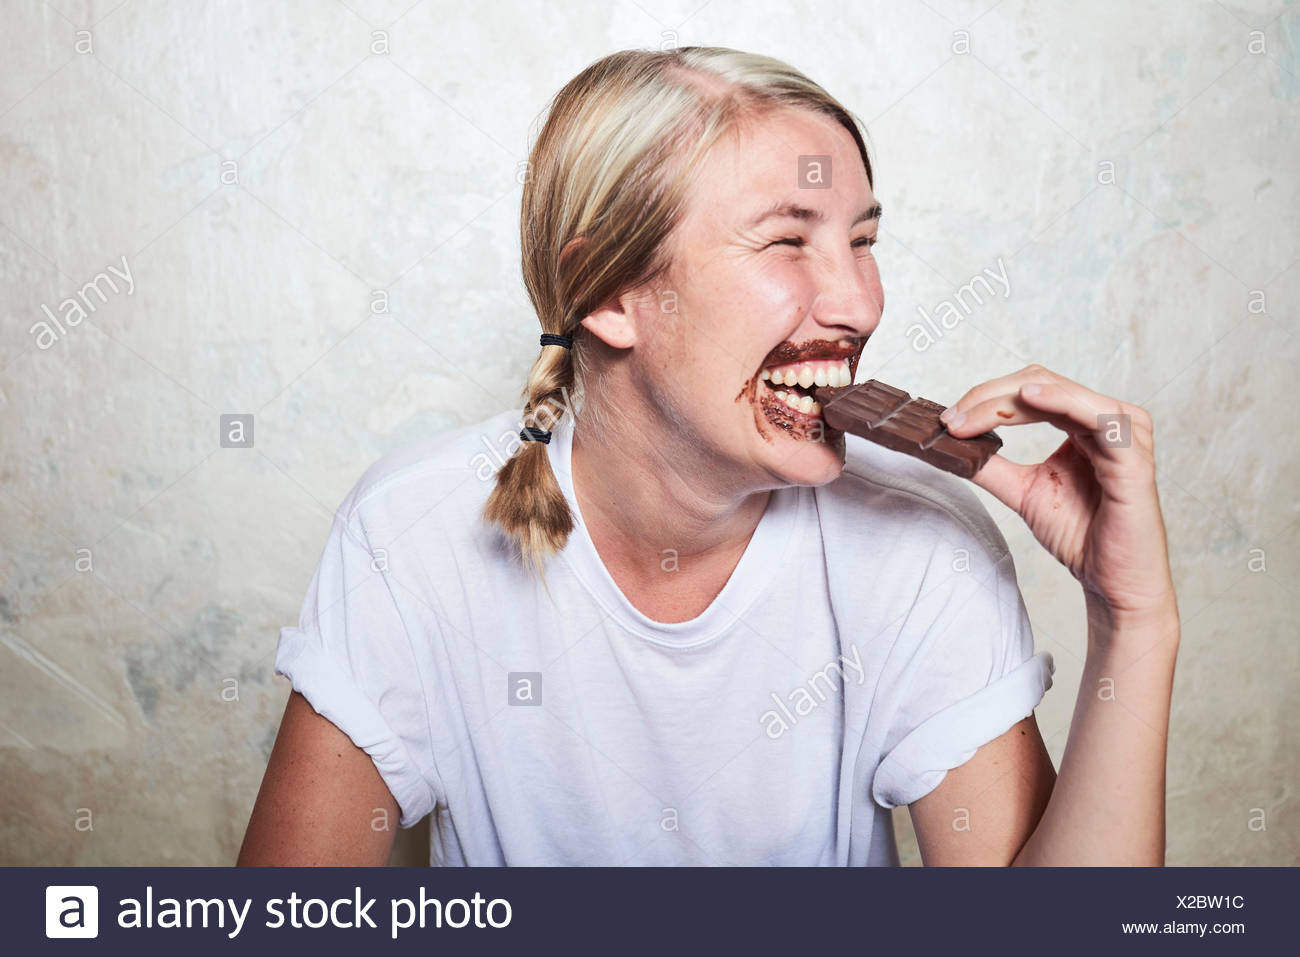 Woman eating barre de chocolat, du chocolat autour de la bouche, laughing Photo Stock